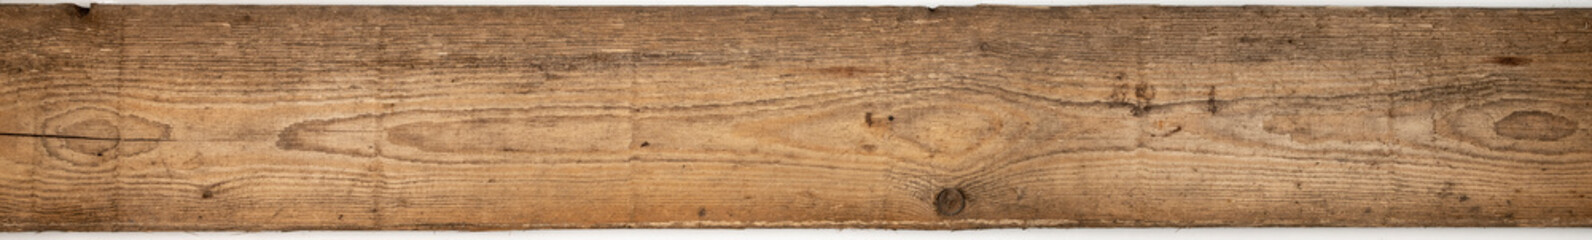 isolated old wooden empty panel Background. rustic textured grungy floor